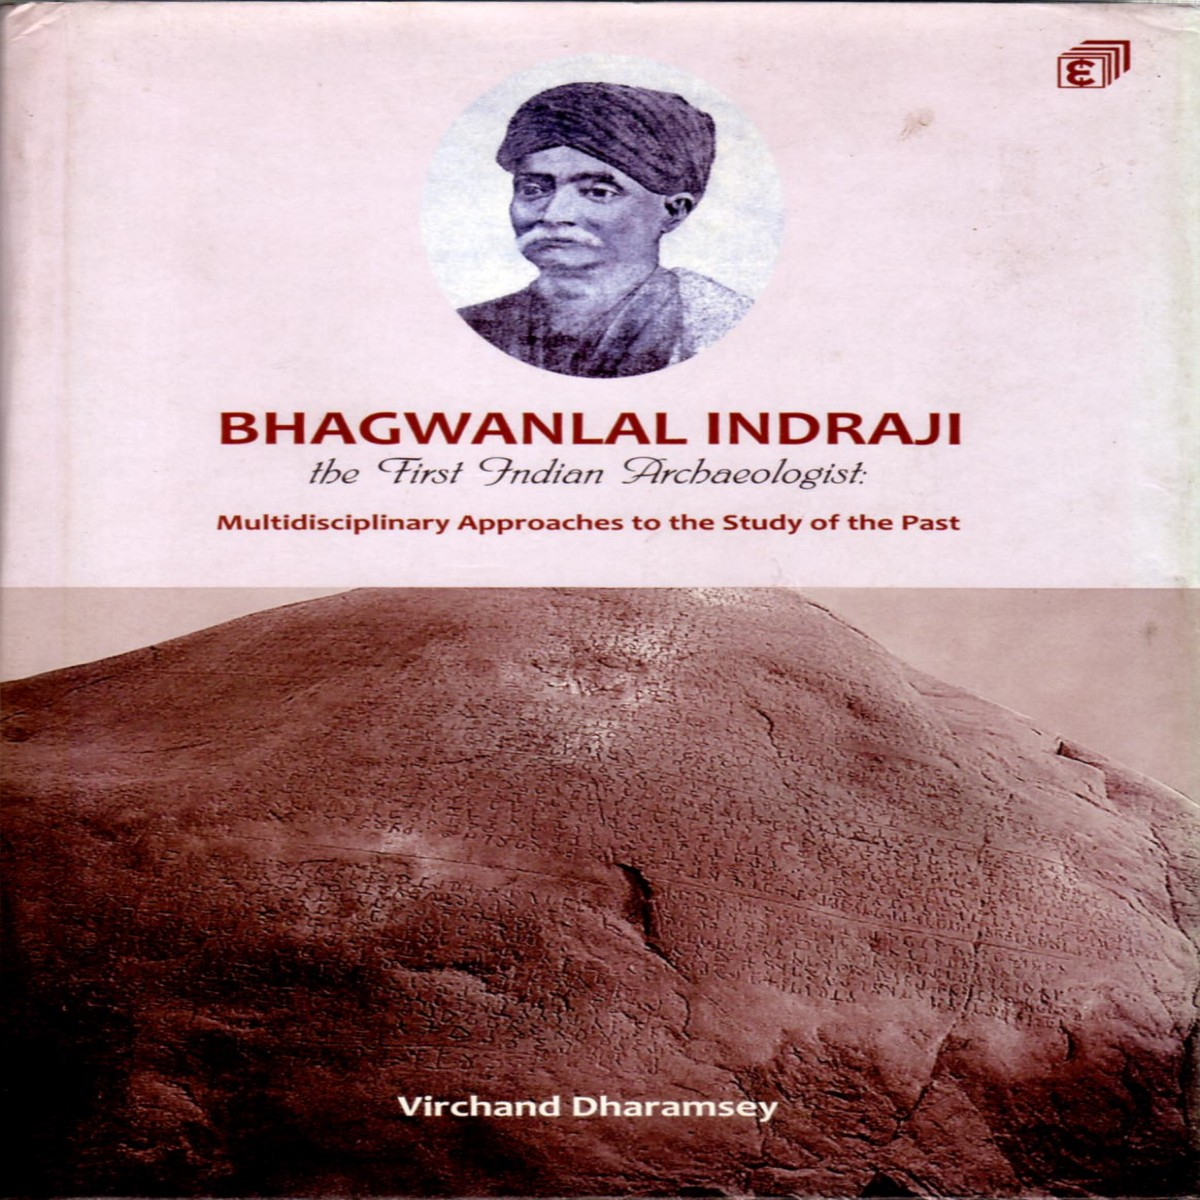 Bhagwanlal Indraji: The First Indian Archaeologist . Multidisciplinary Approaches to the Study of the Past